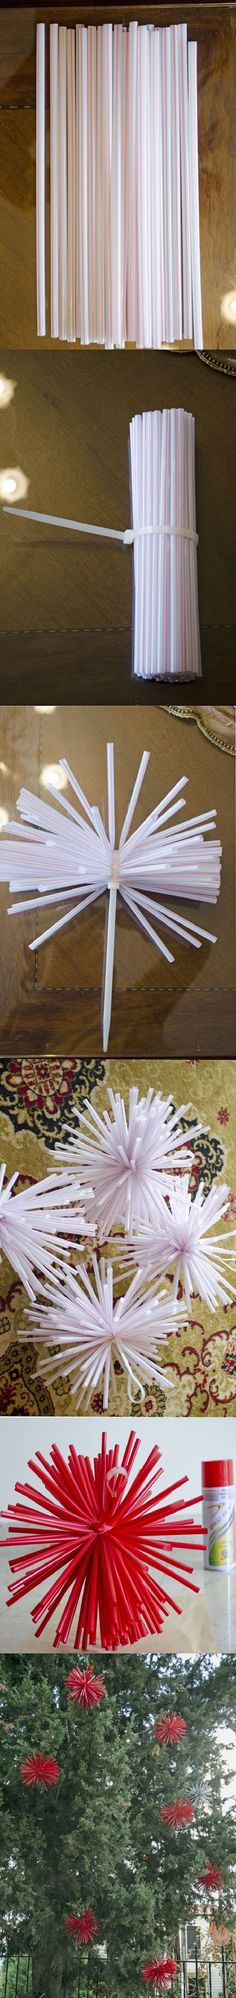 DIY Christmas Decoration Idea